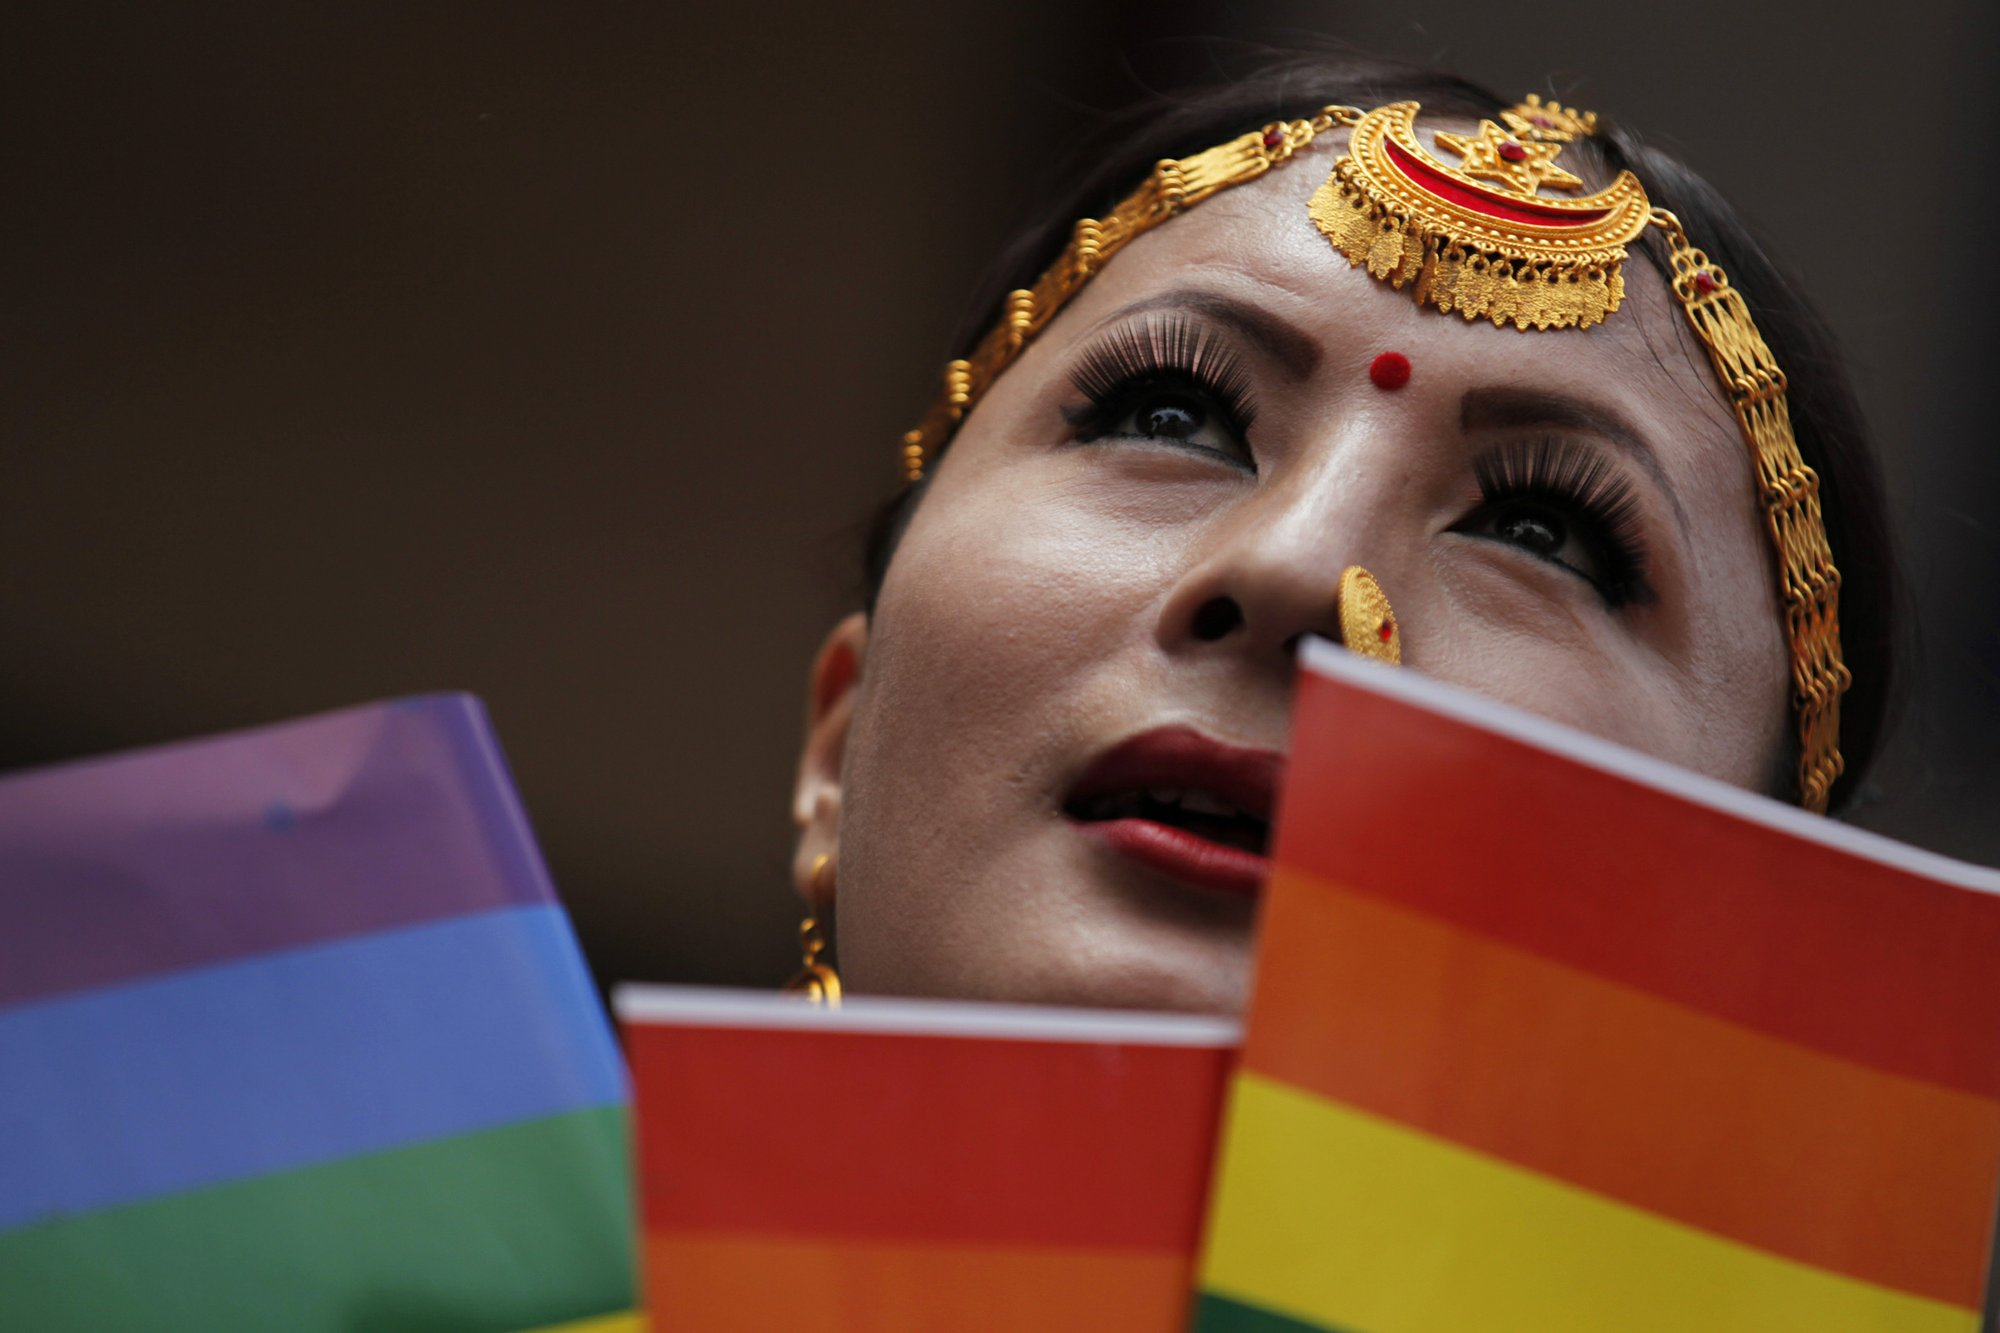 Nepal's sexual minorities say progress in rights has stalled